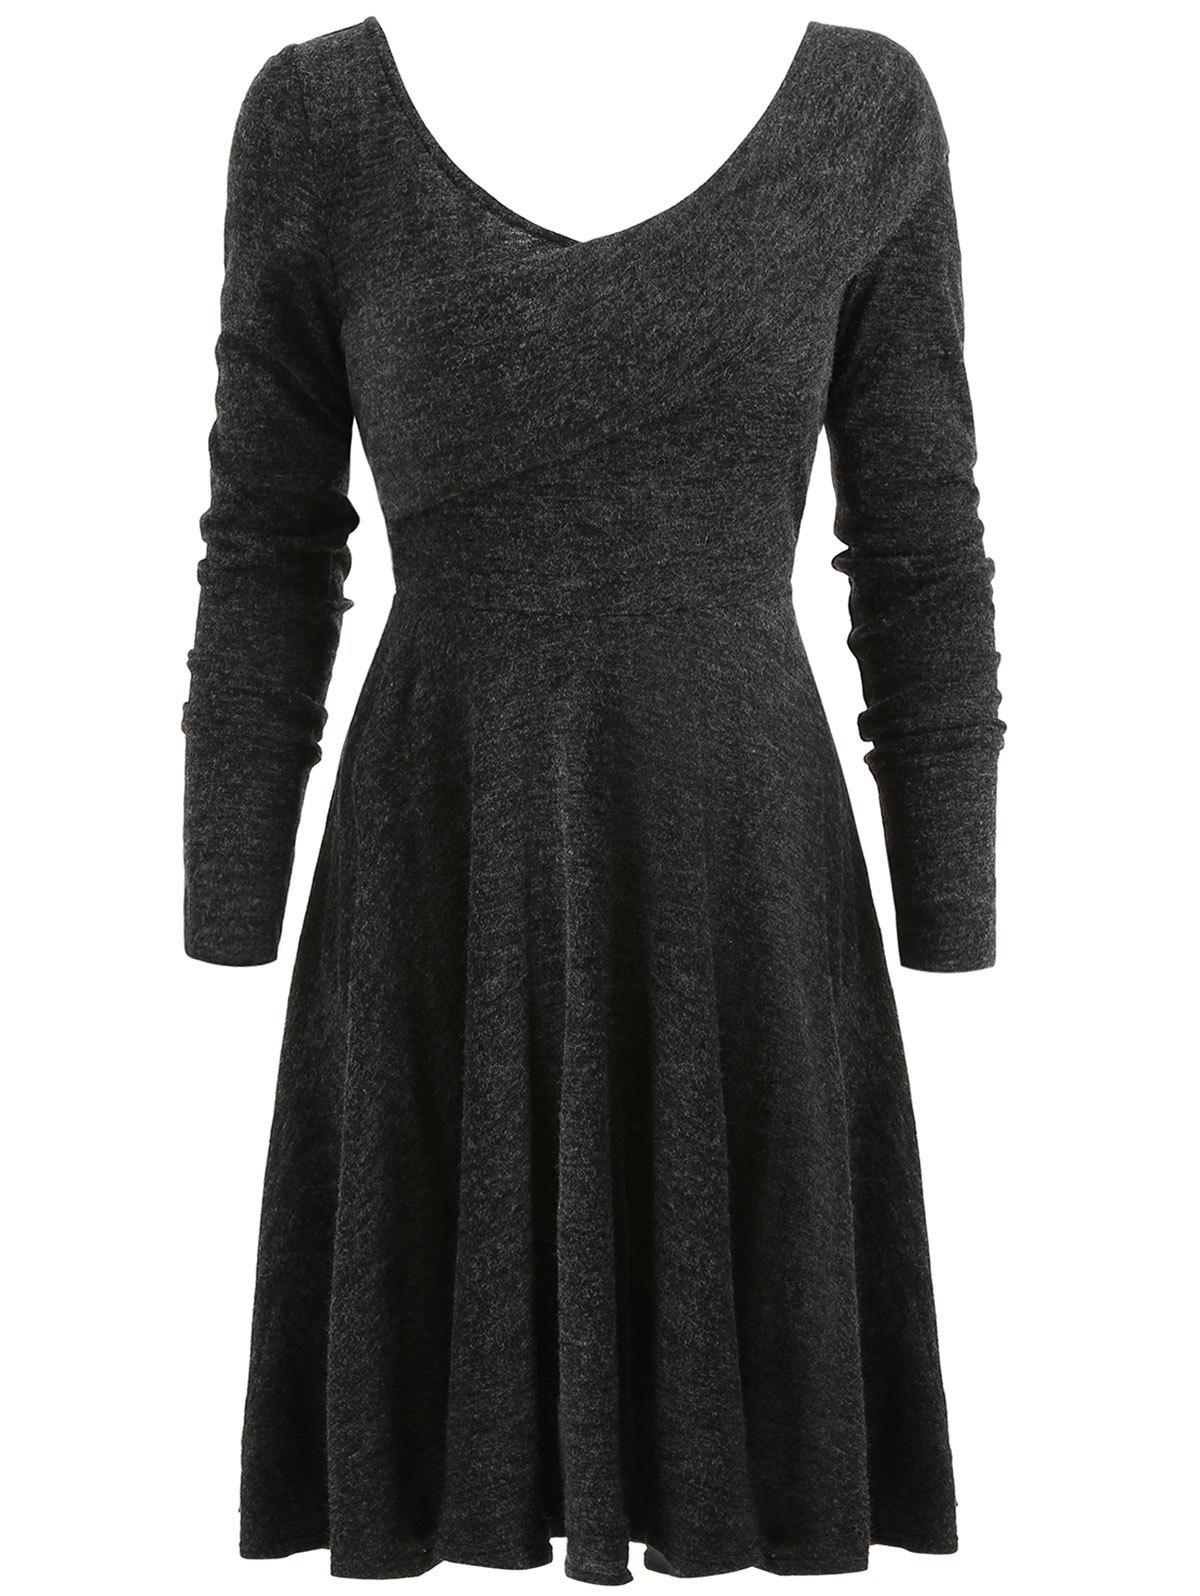 Chic Flexible Collar Sweater Dress